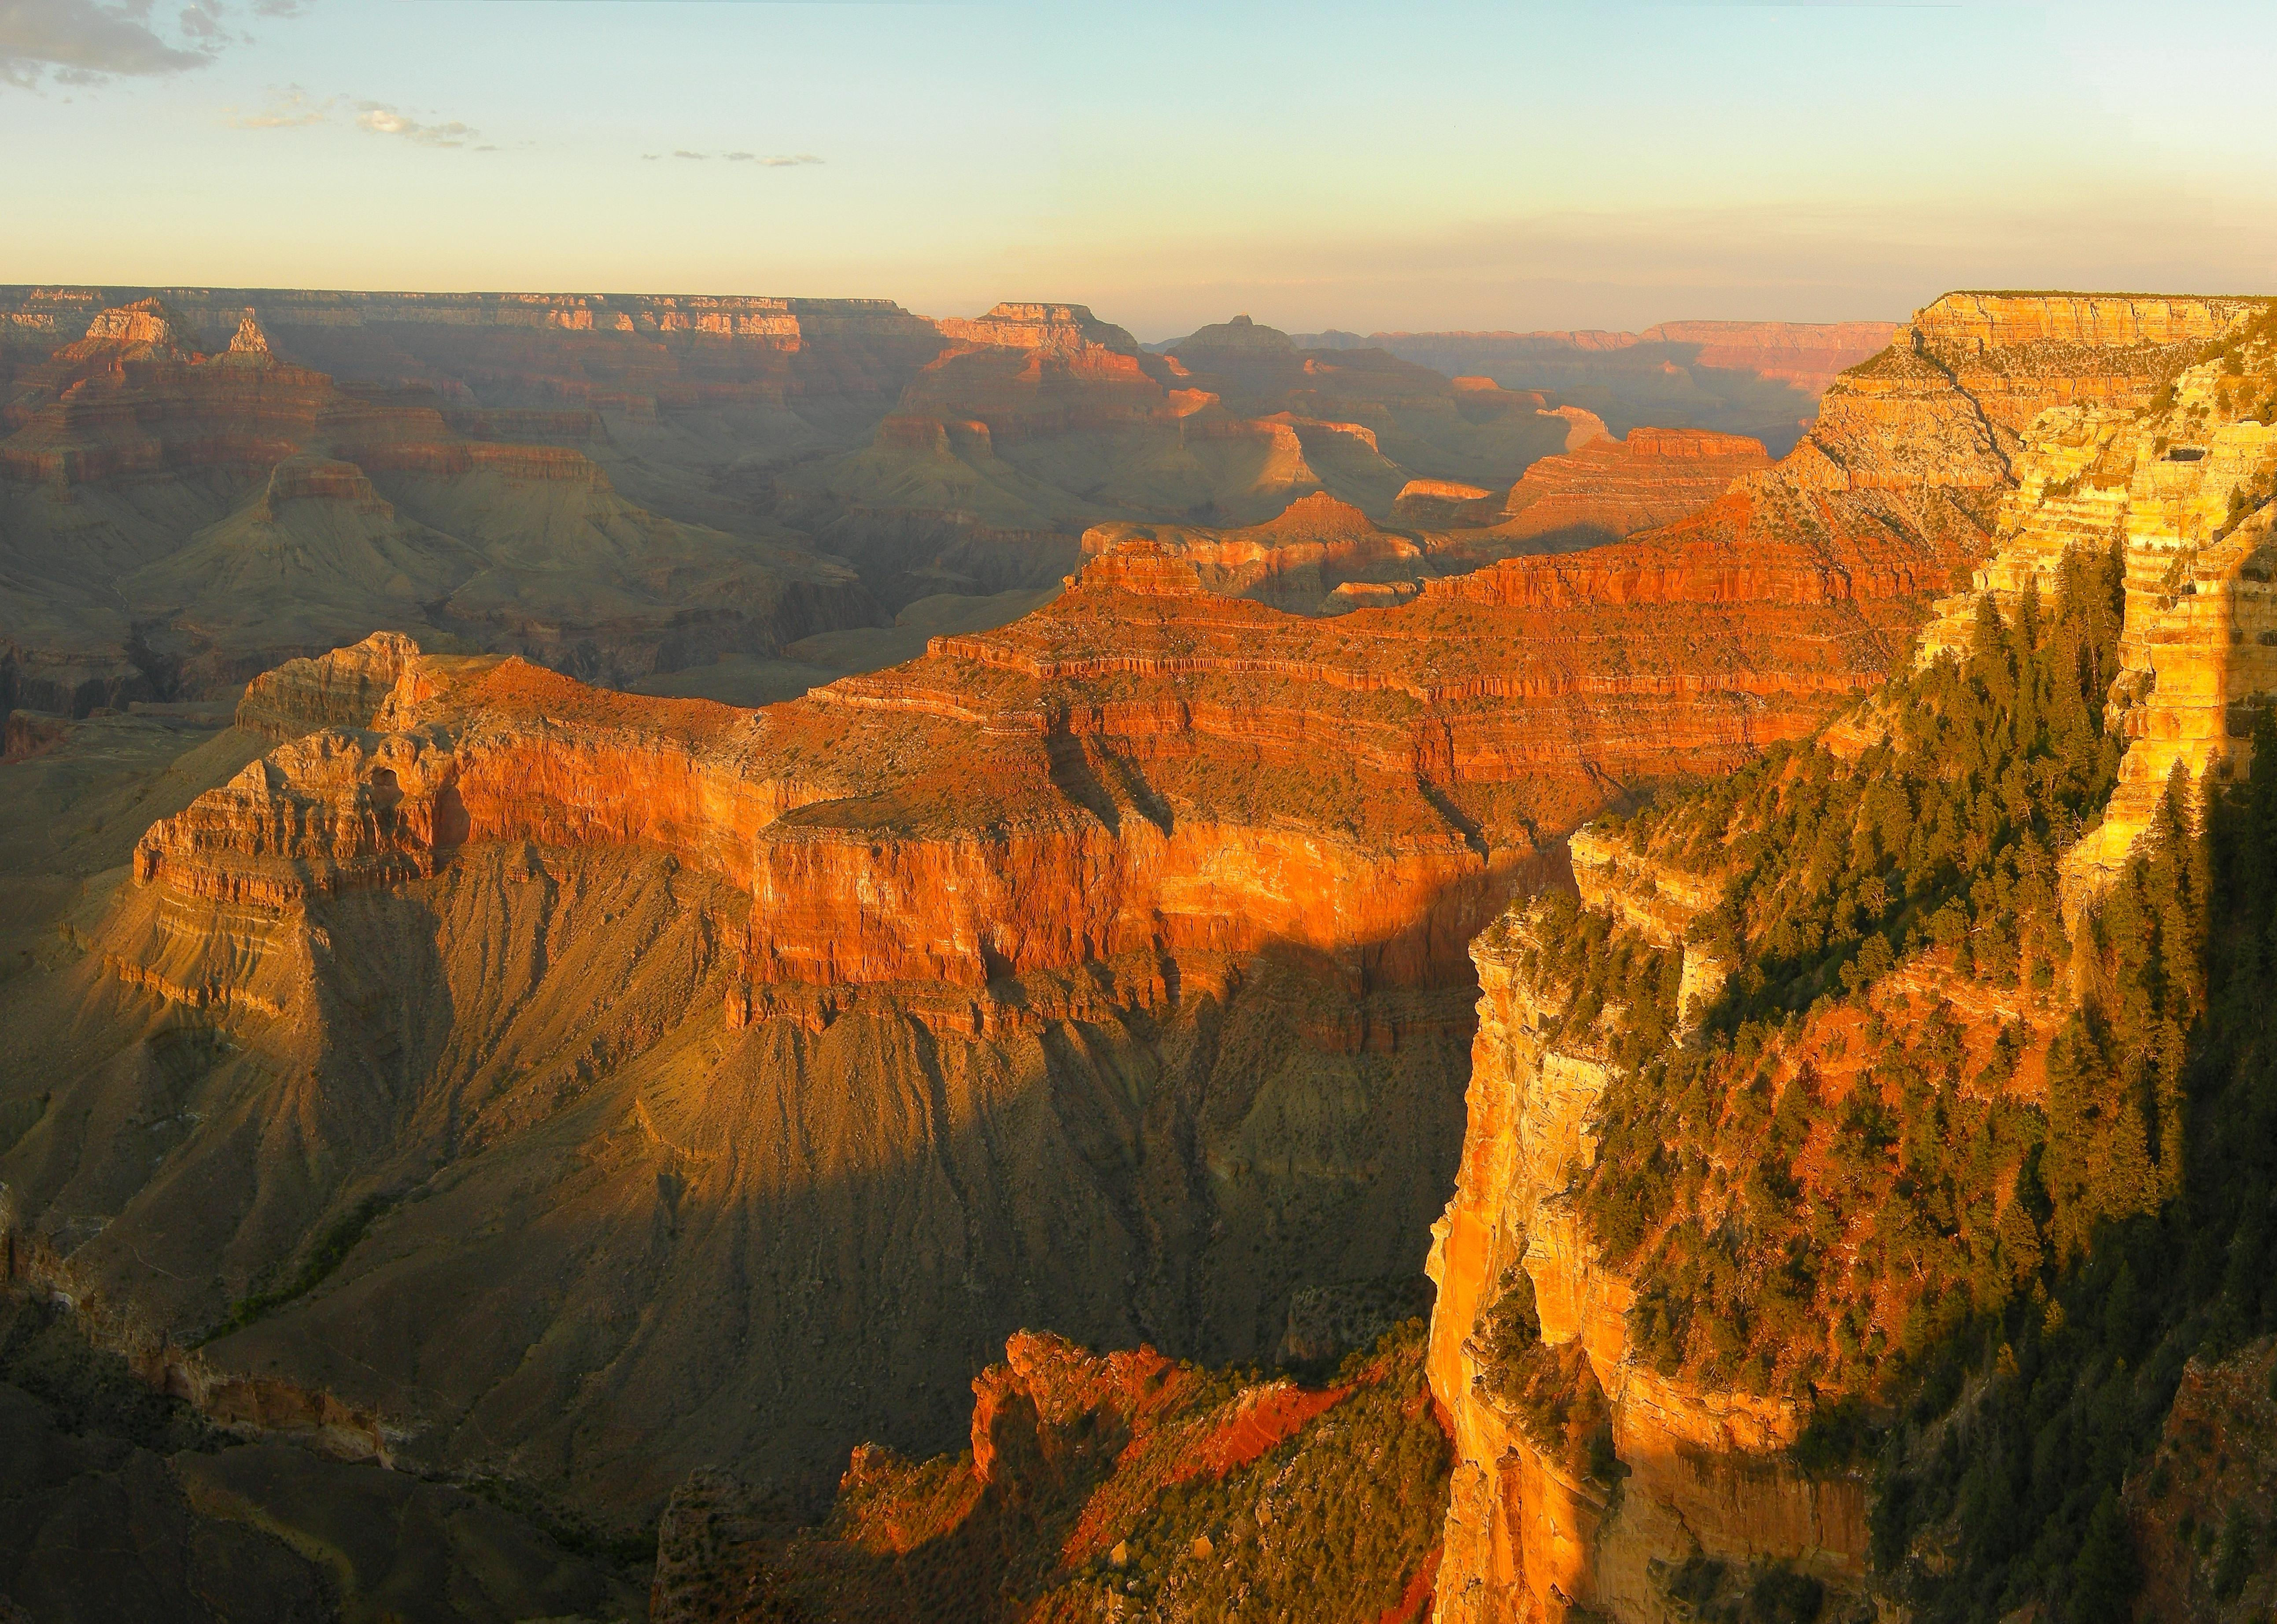 grand canyon pic: